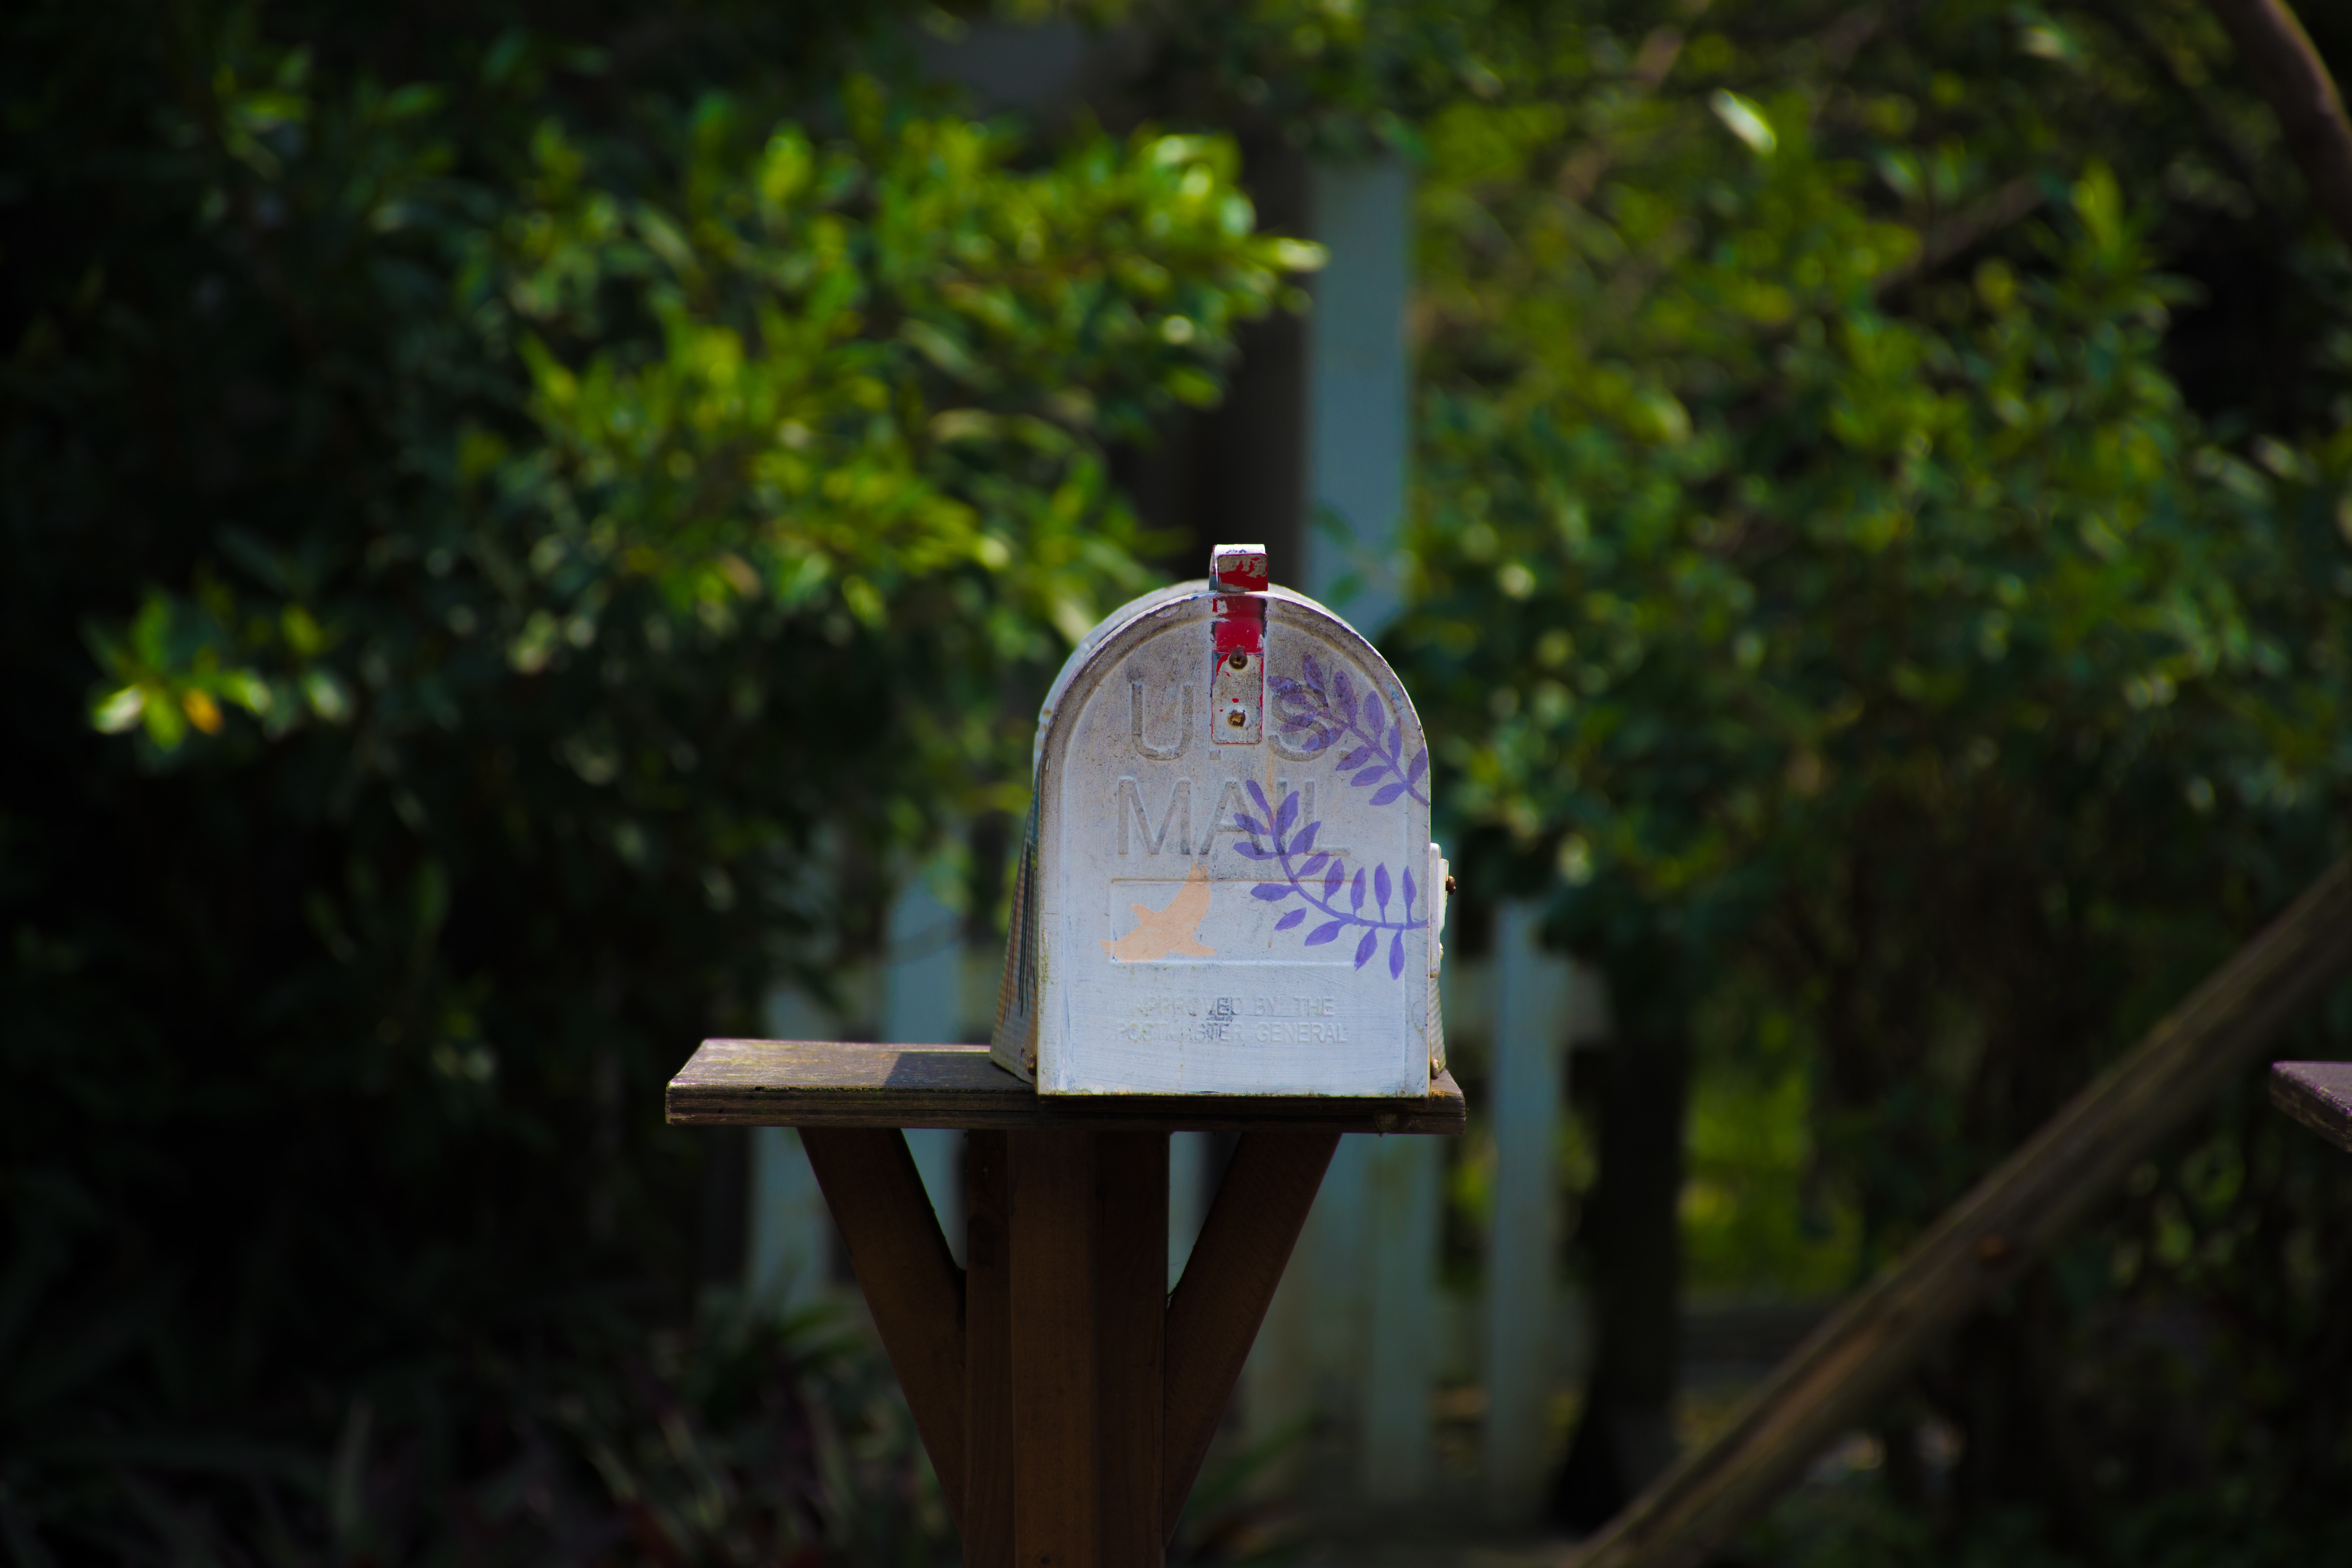 Hand-painted mailbox resting on a wooden pedestal